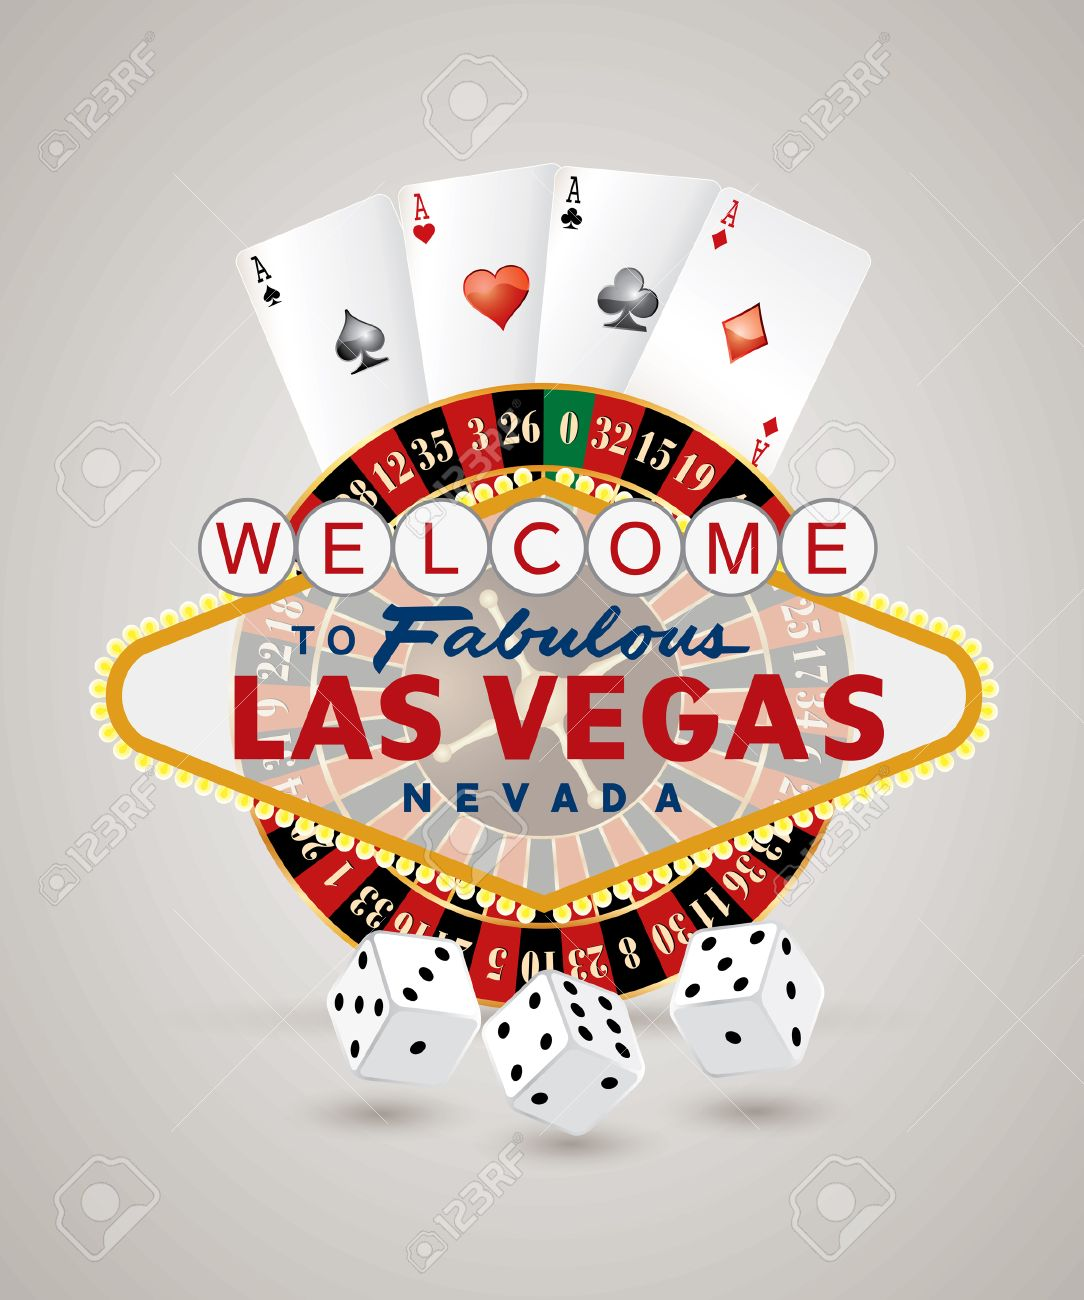 Traditional european roulette table vector illustration stock vector - American Roulette Vector American Roulette Wheel With Las Vegas Sign Playing Cards And Dice